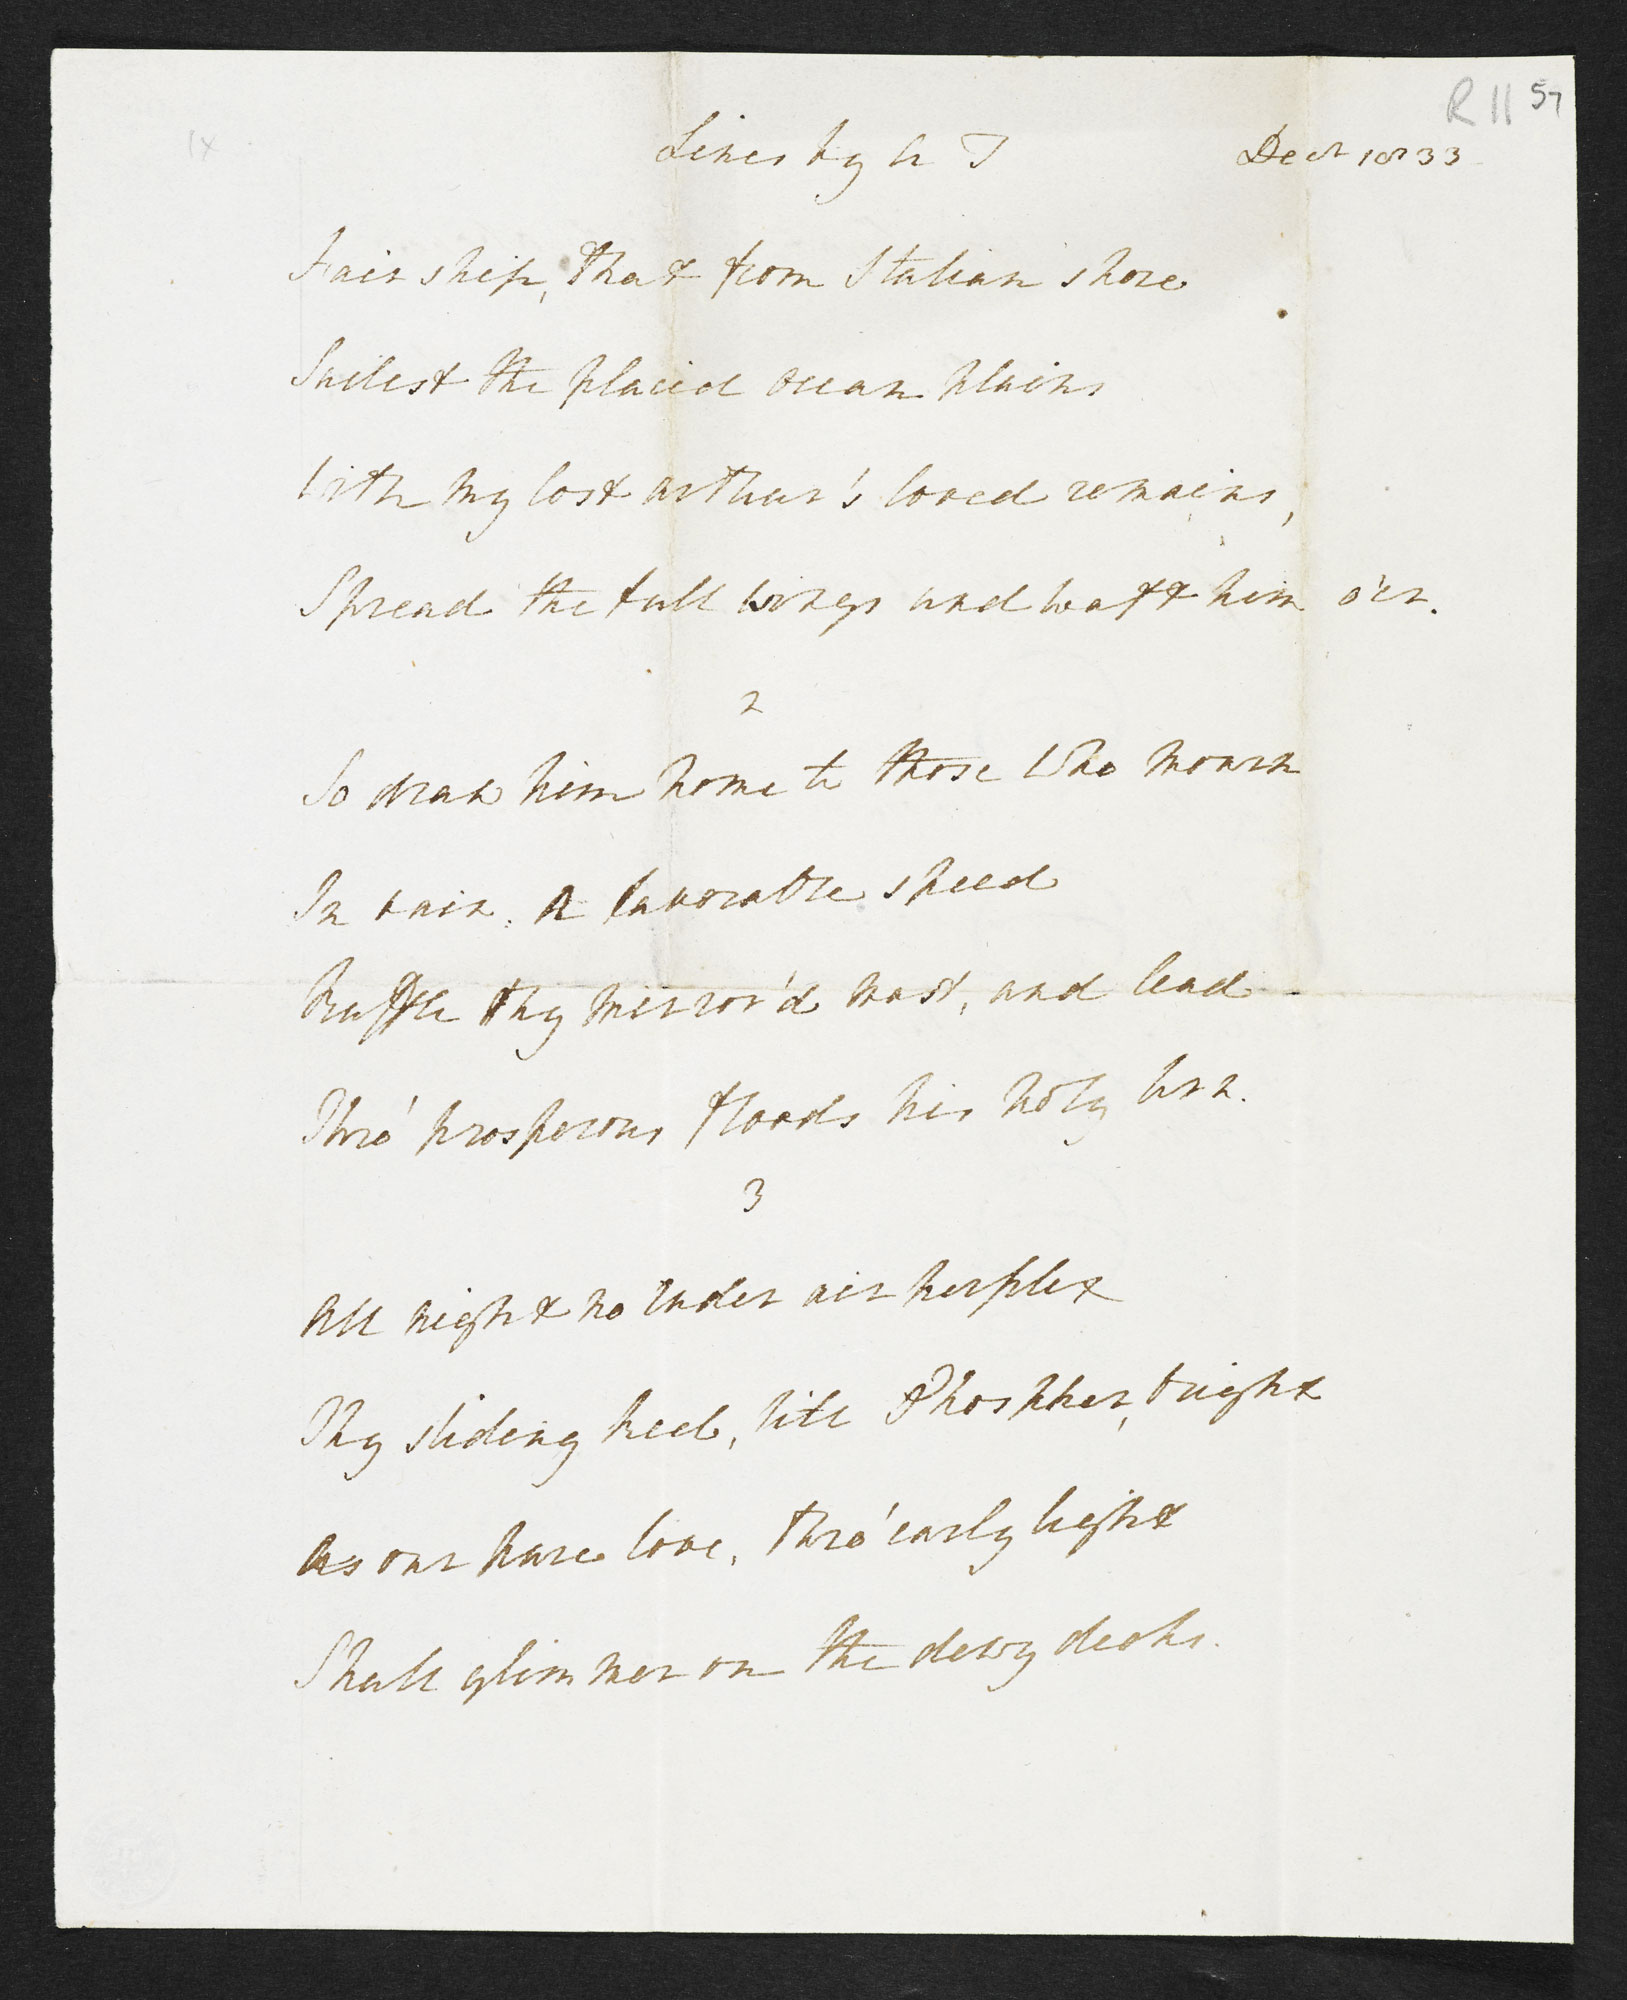 The papers of Arthur Henry Hallam, including manuscript versions of Tennyson's 'In Memoriam A.H.H.' [folio: 57r]